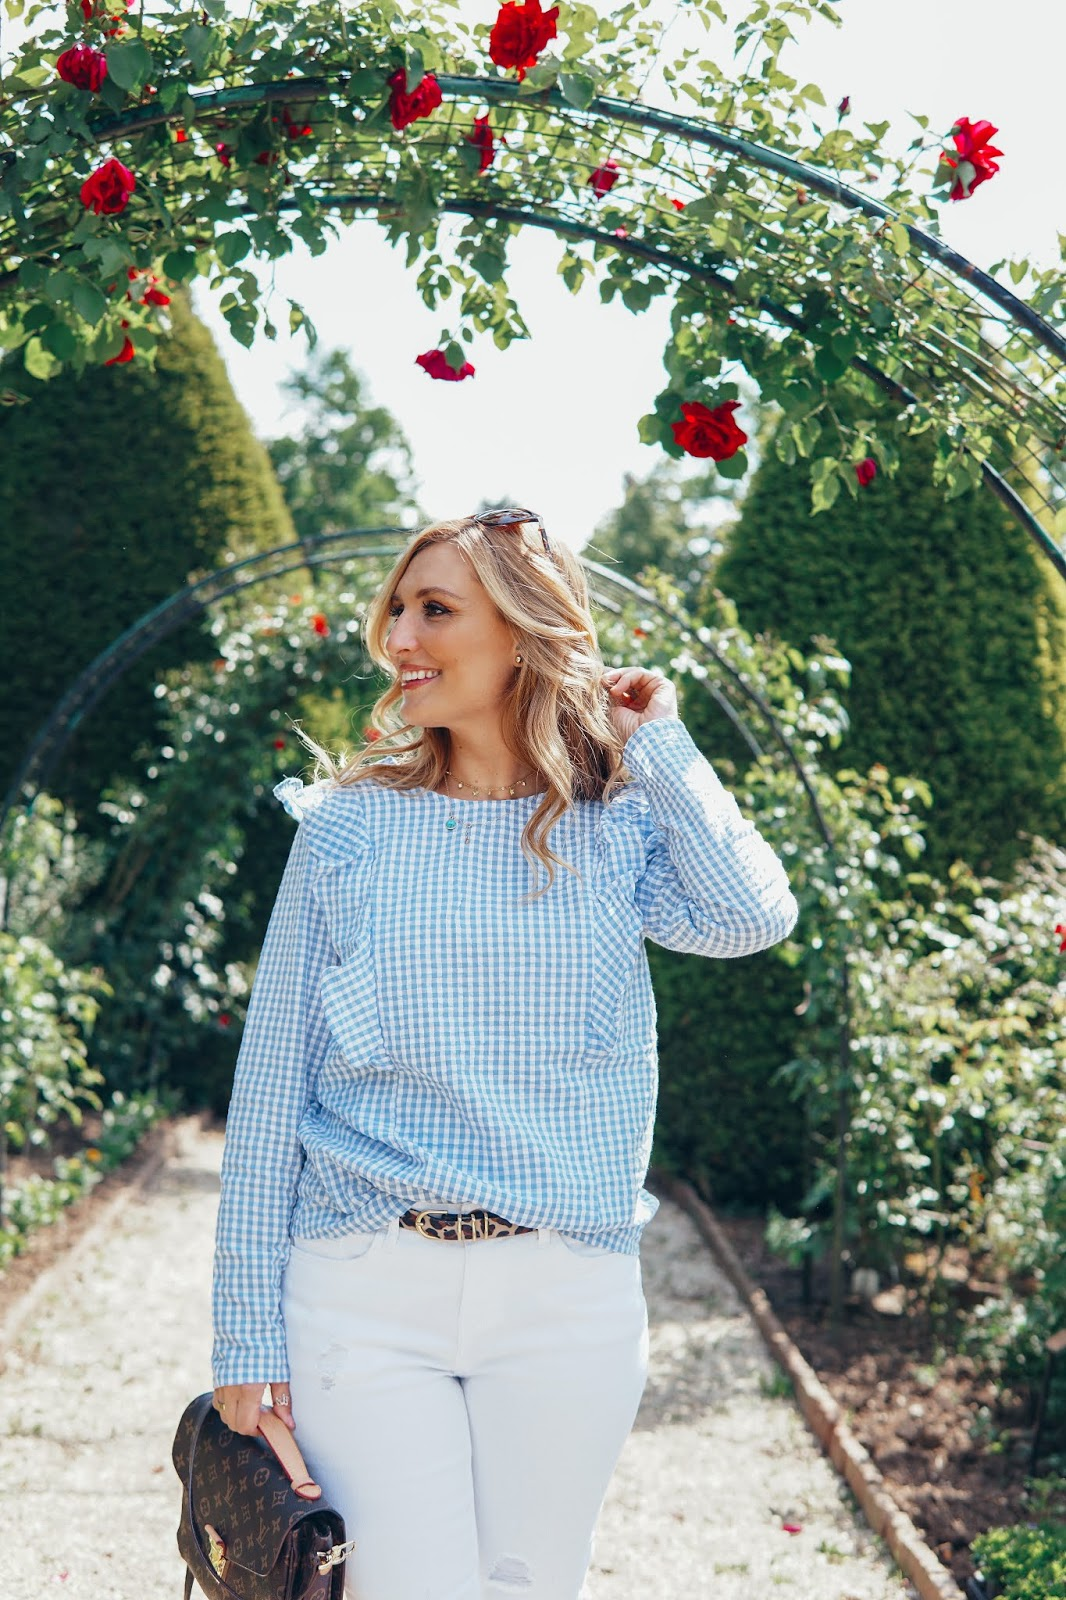 Was-ziehe-ich-im-sommer-an-casual-chic-style-fashionblogger-fashionstylebyohanna